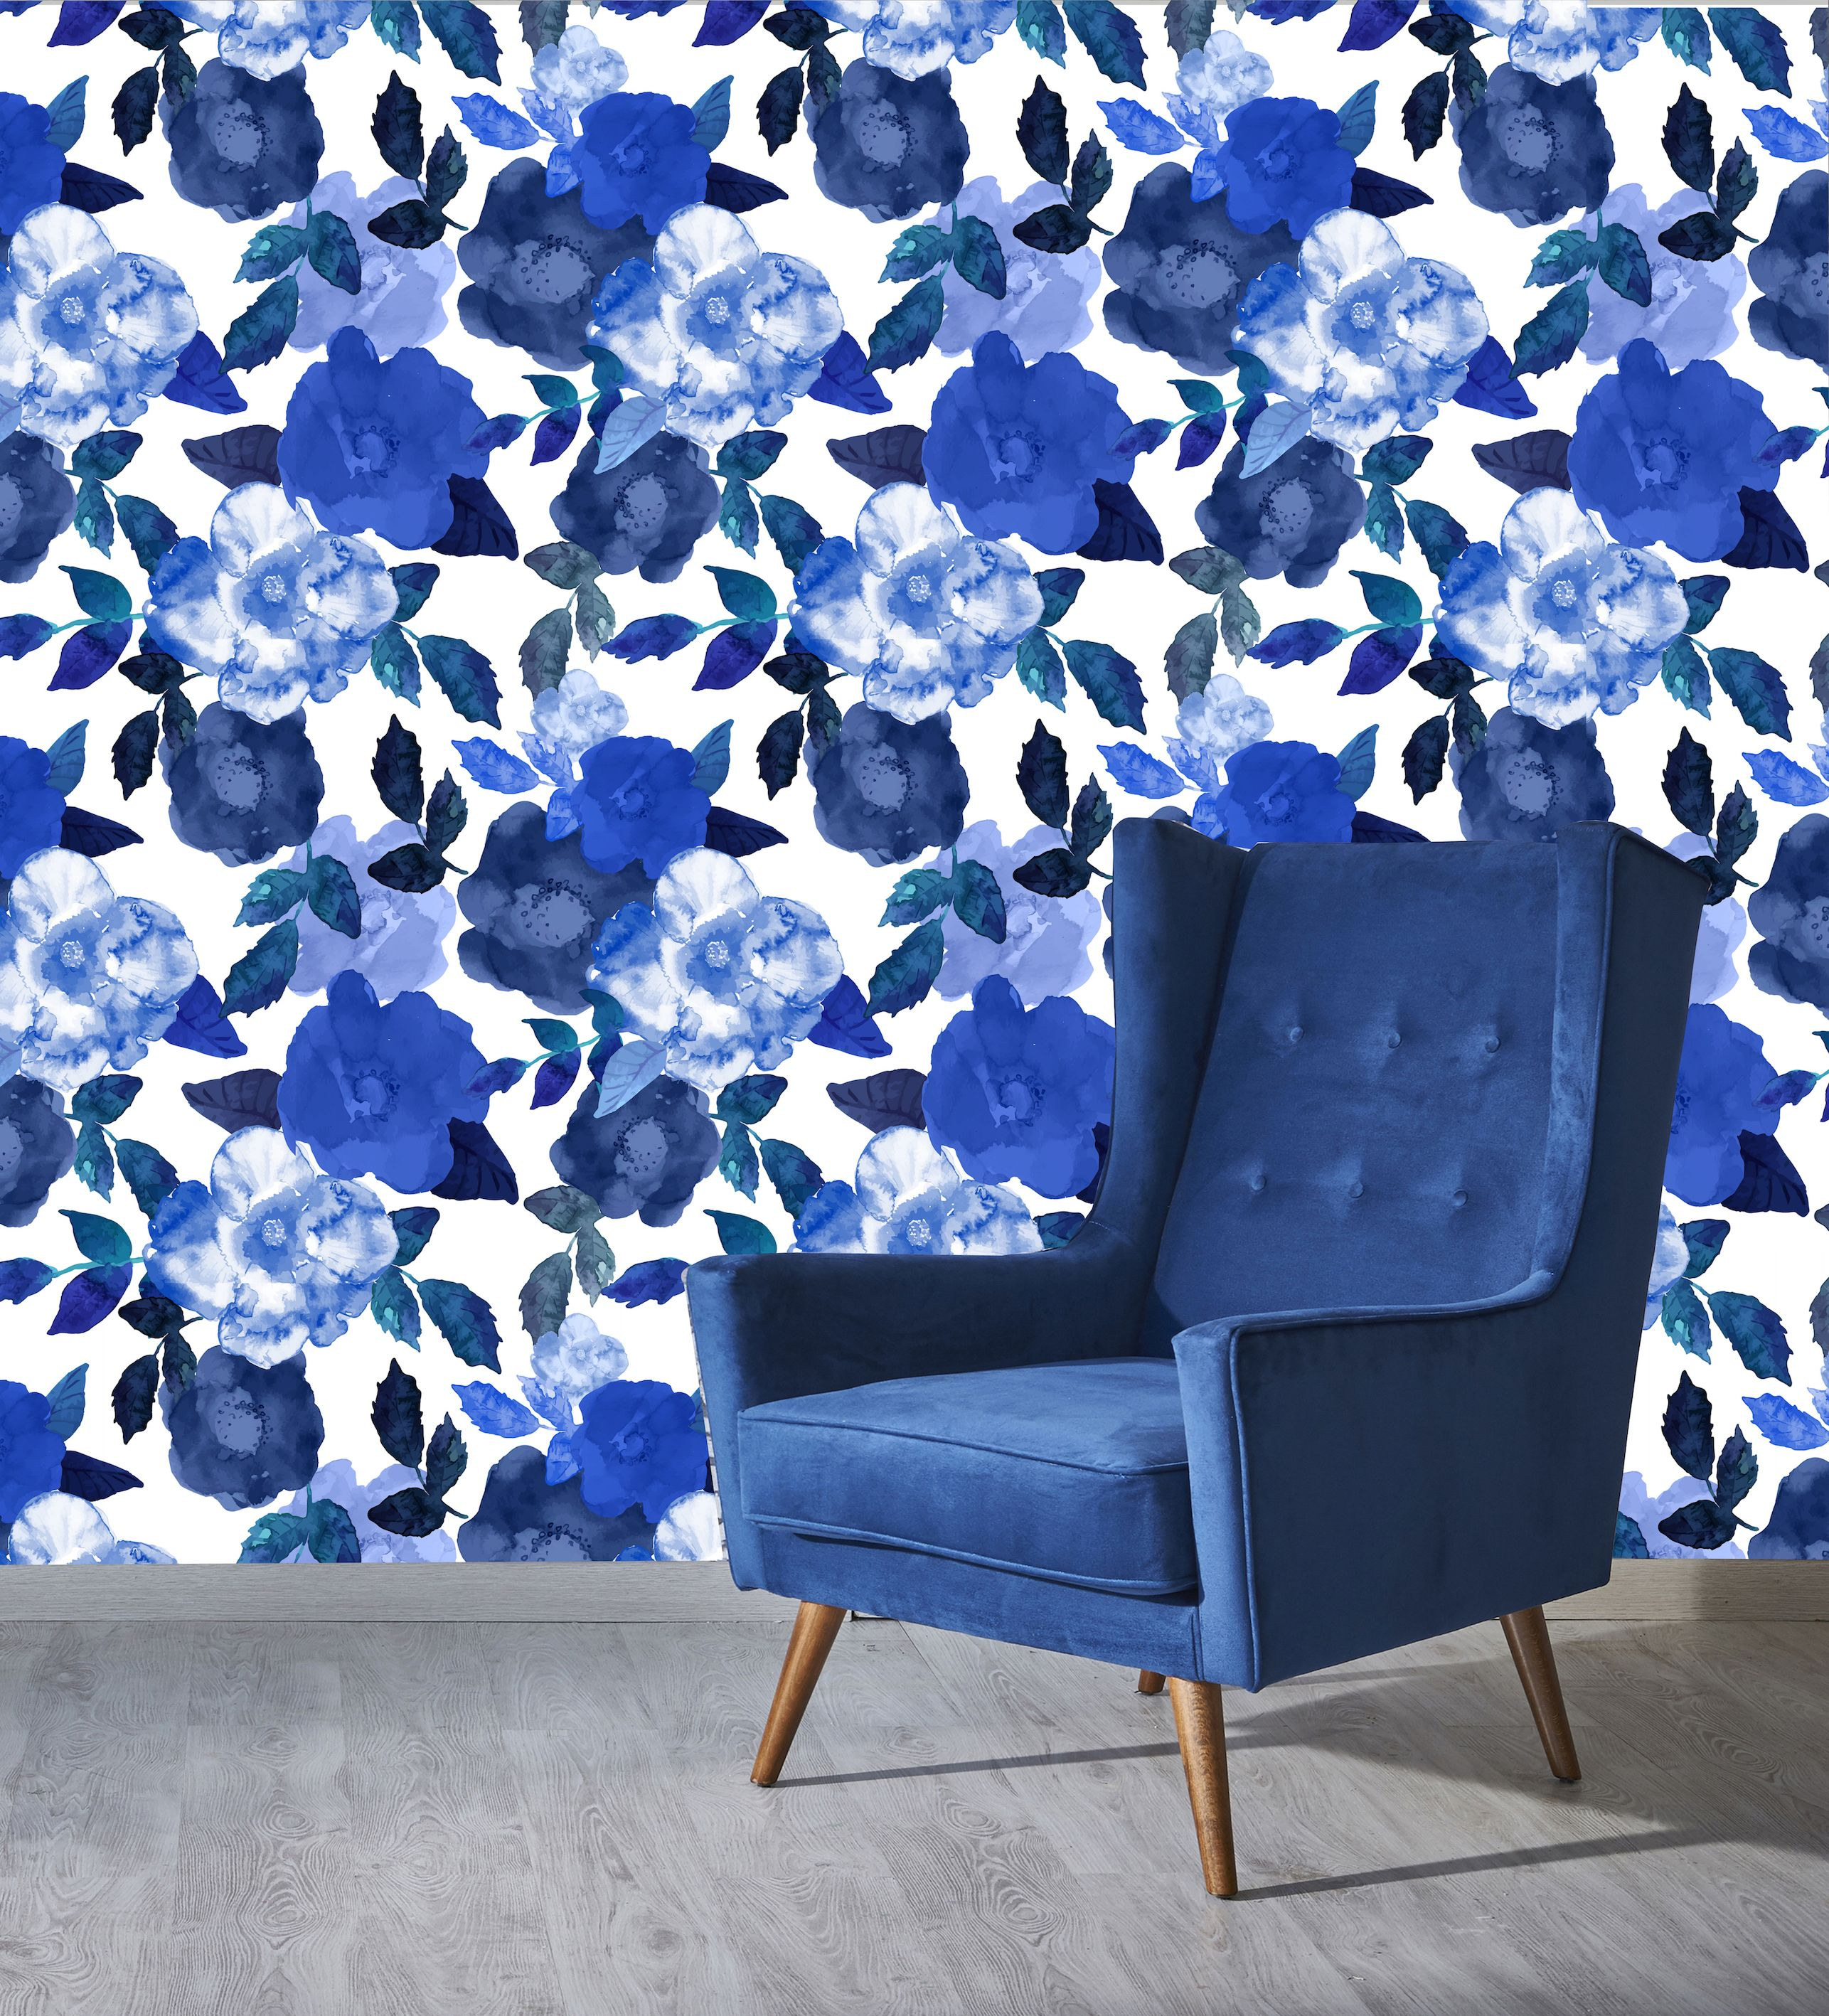 30 statement wallpapers patterned